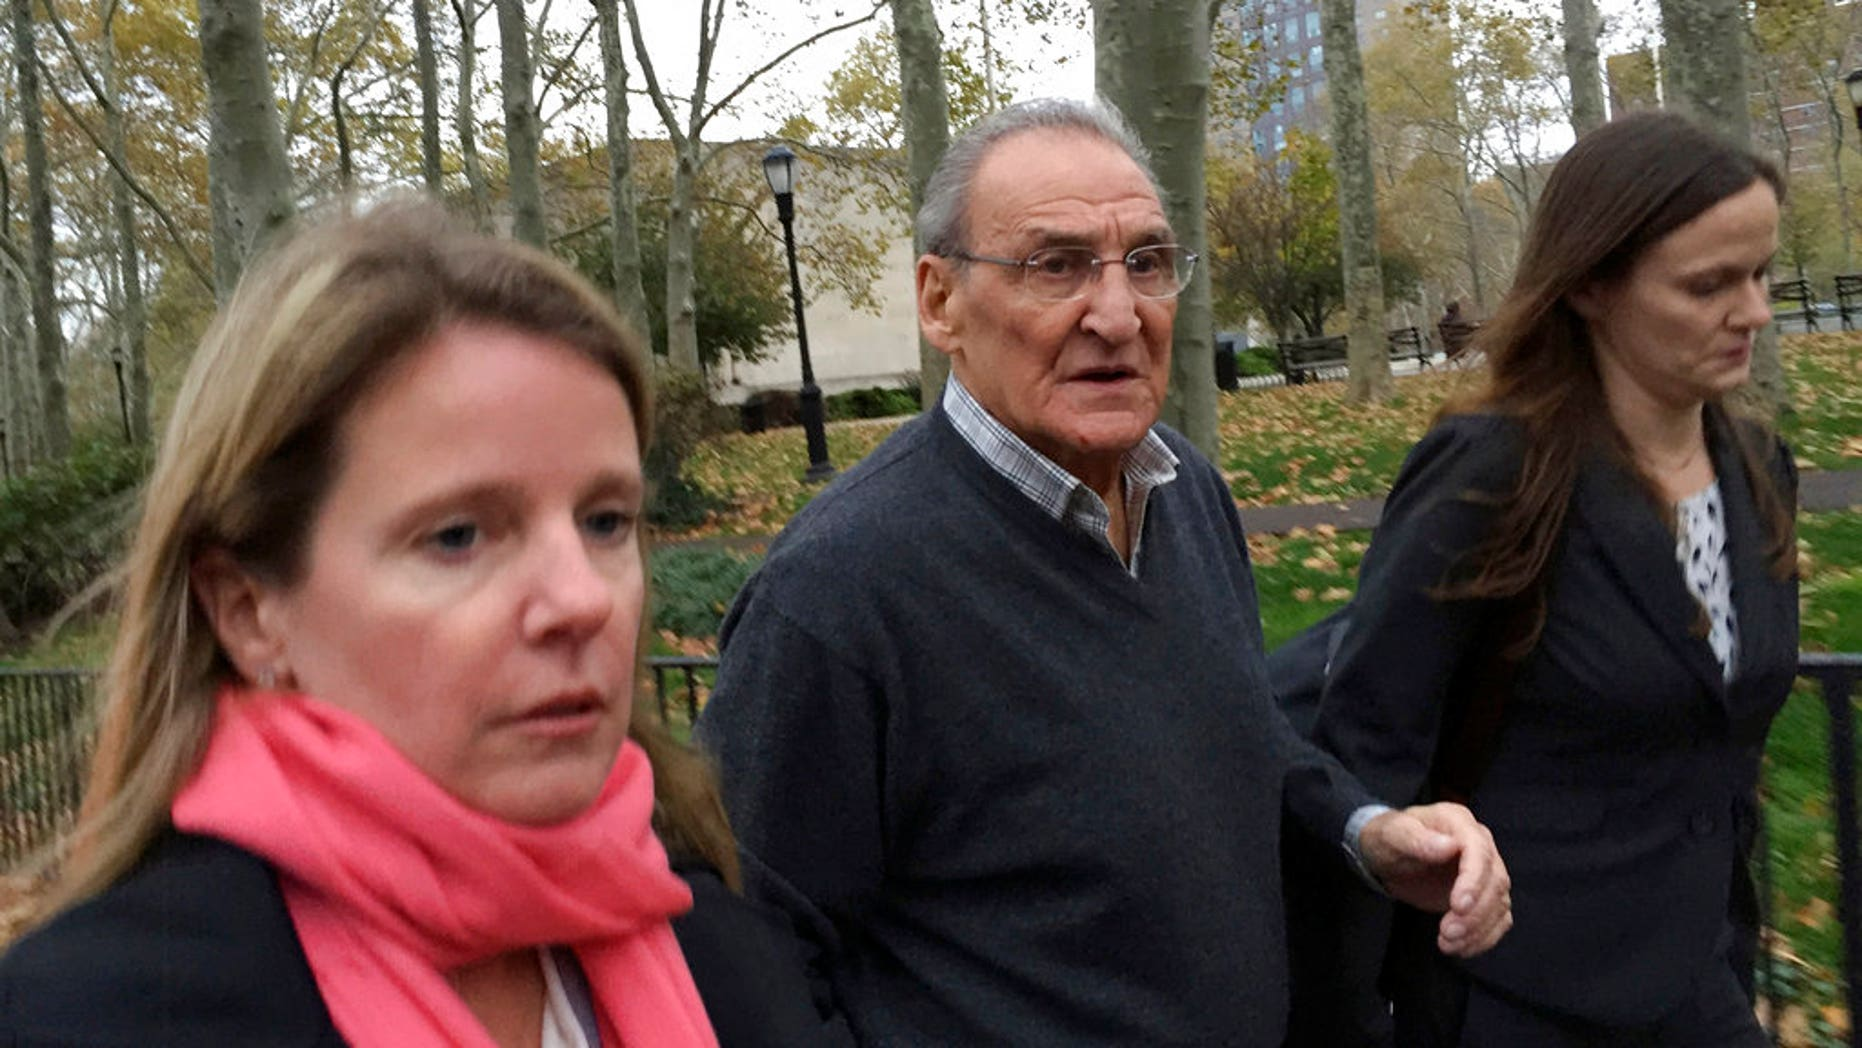 Vincent Asaro is pictured leaving a Brooklyn, N.Y., courthouse, Nov. 12, 2015.